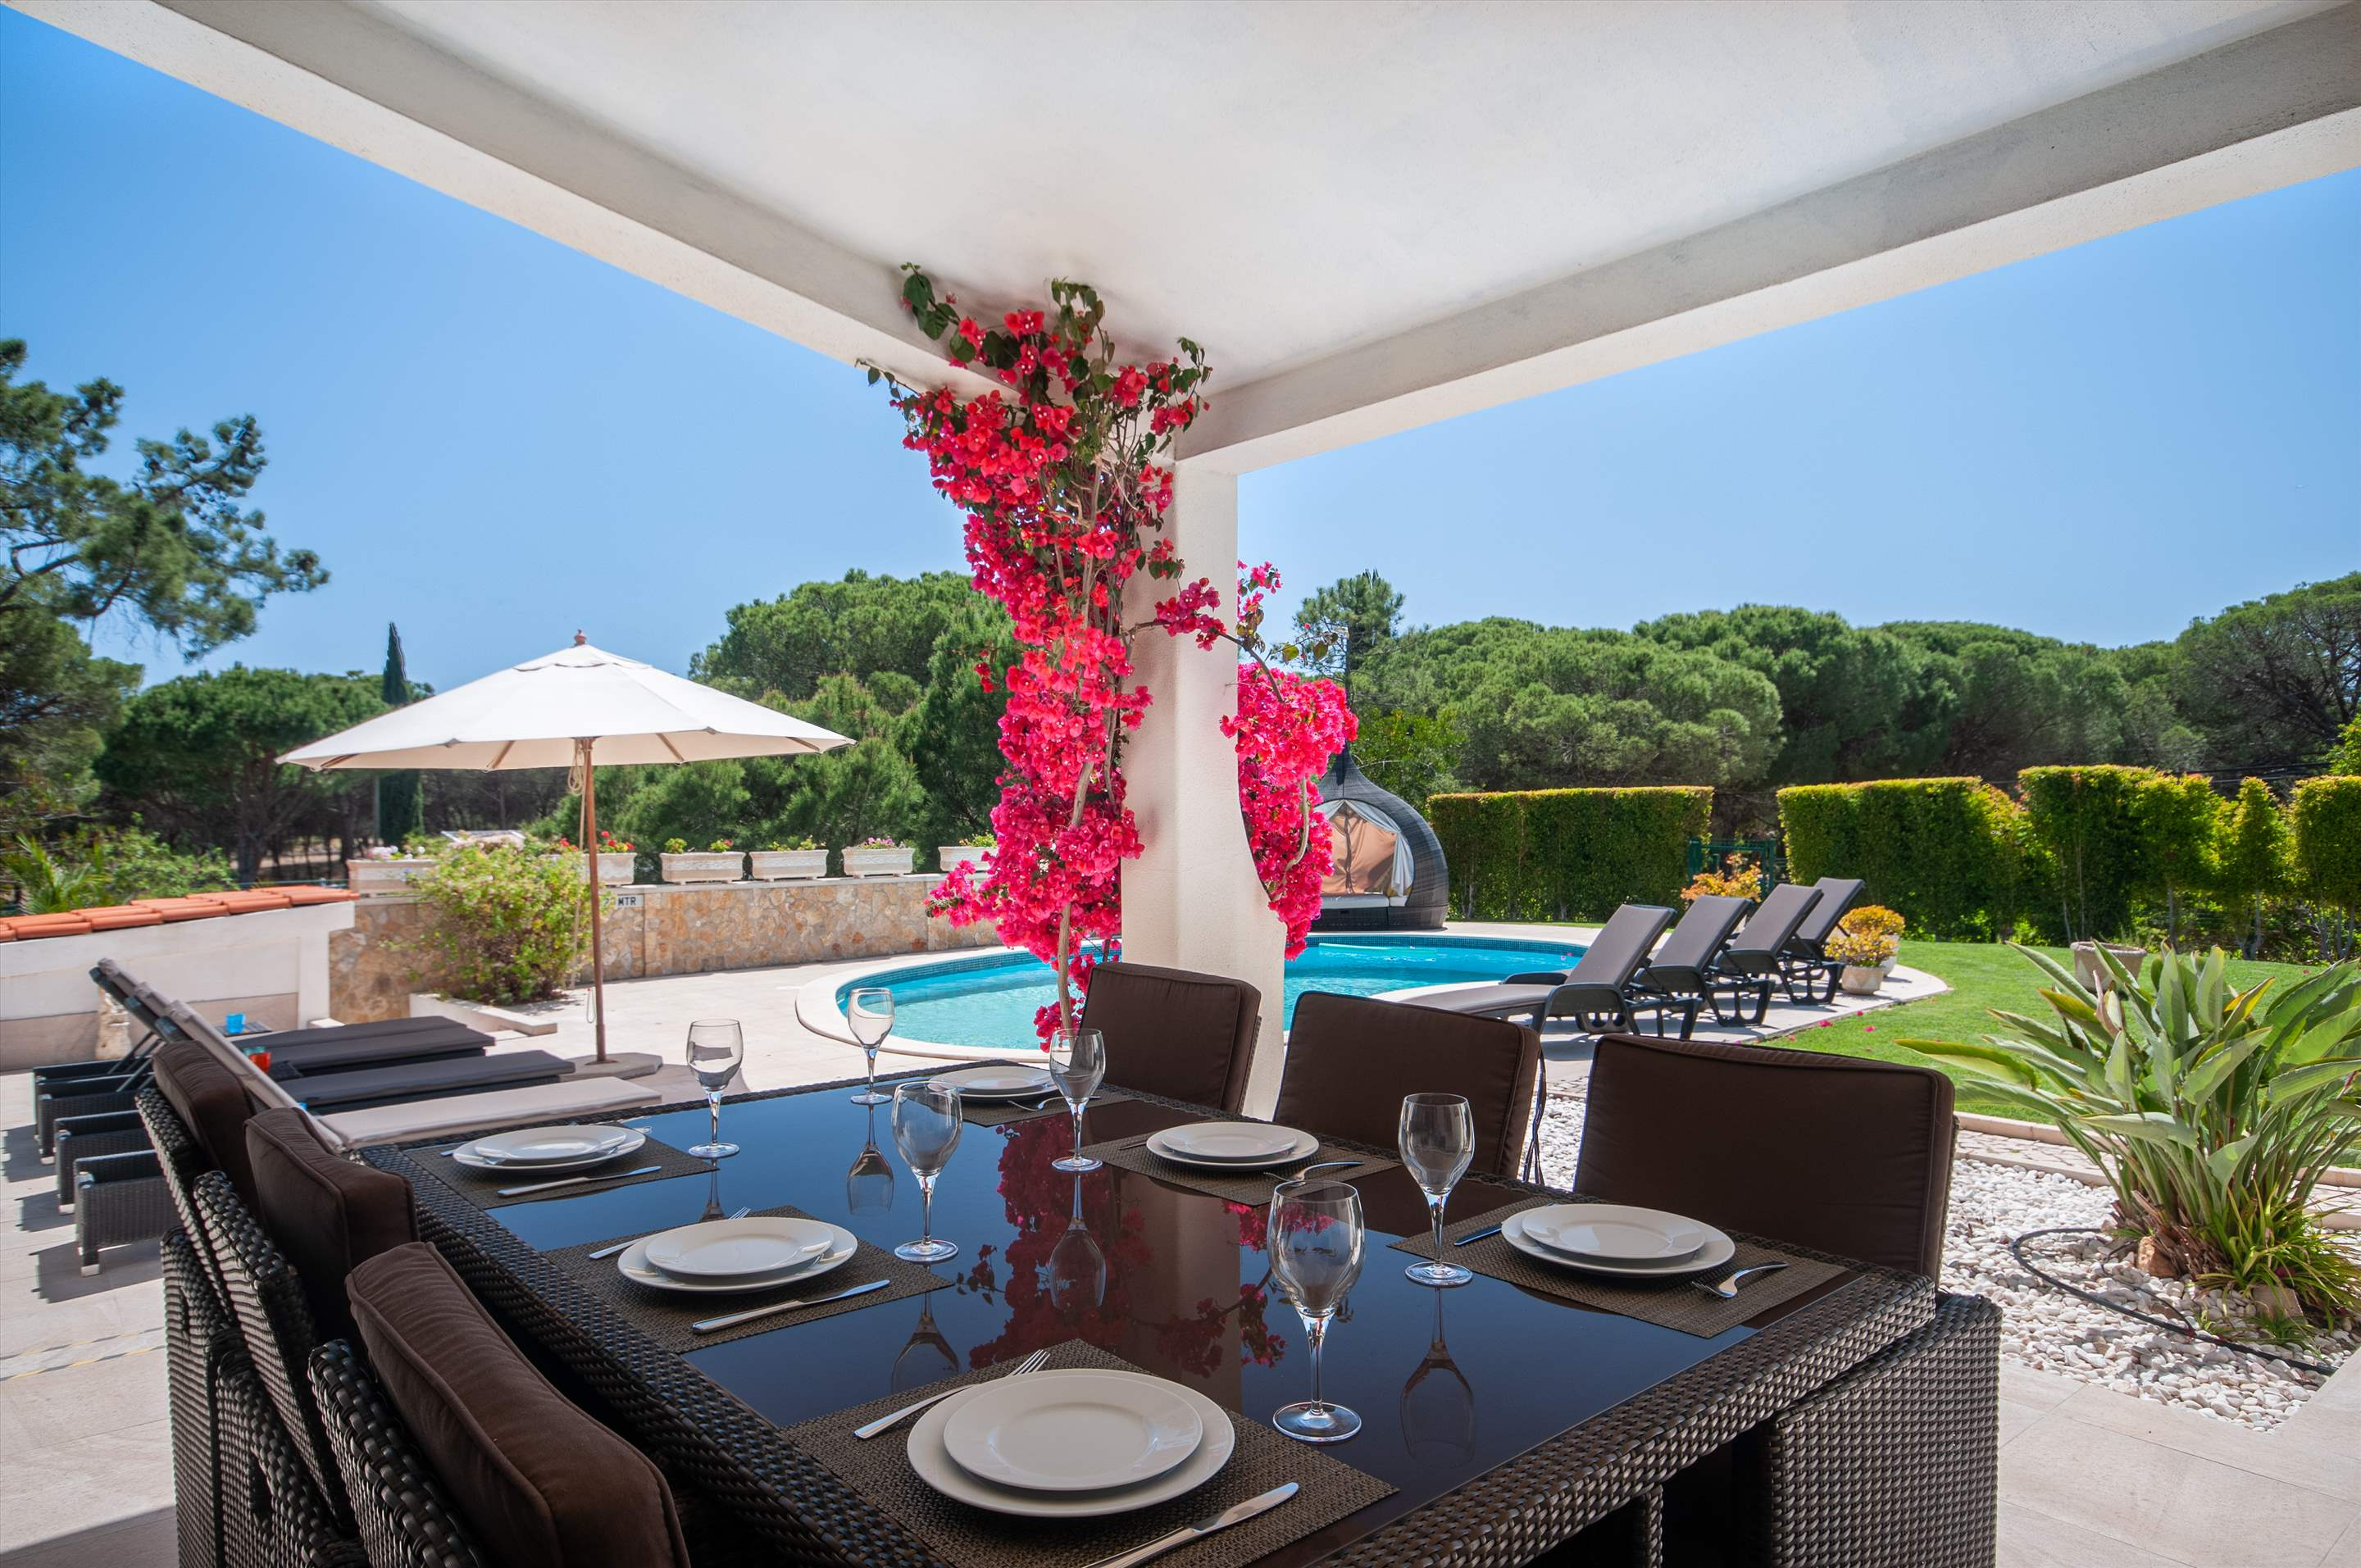 Villa Quinta Francisco, 4 bedroom villa in Vale do Lobo, Algarve Photo #2